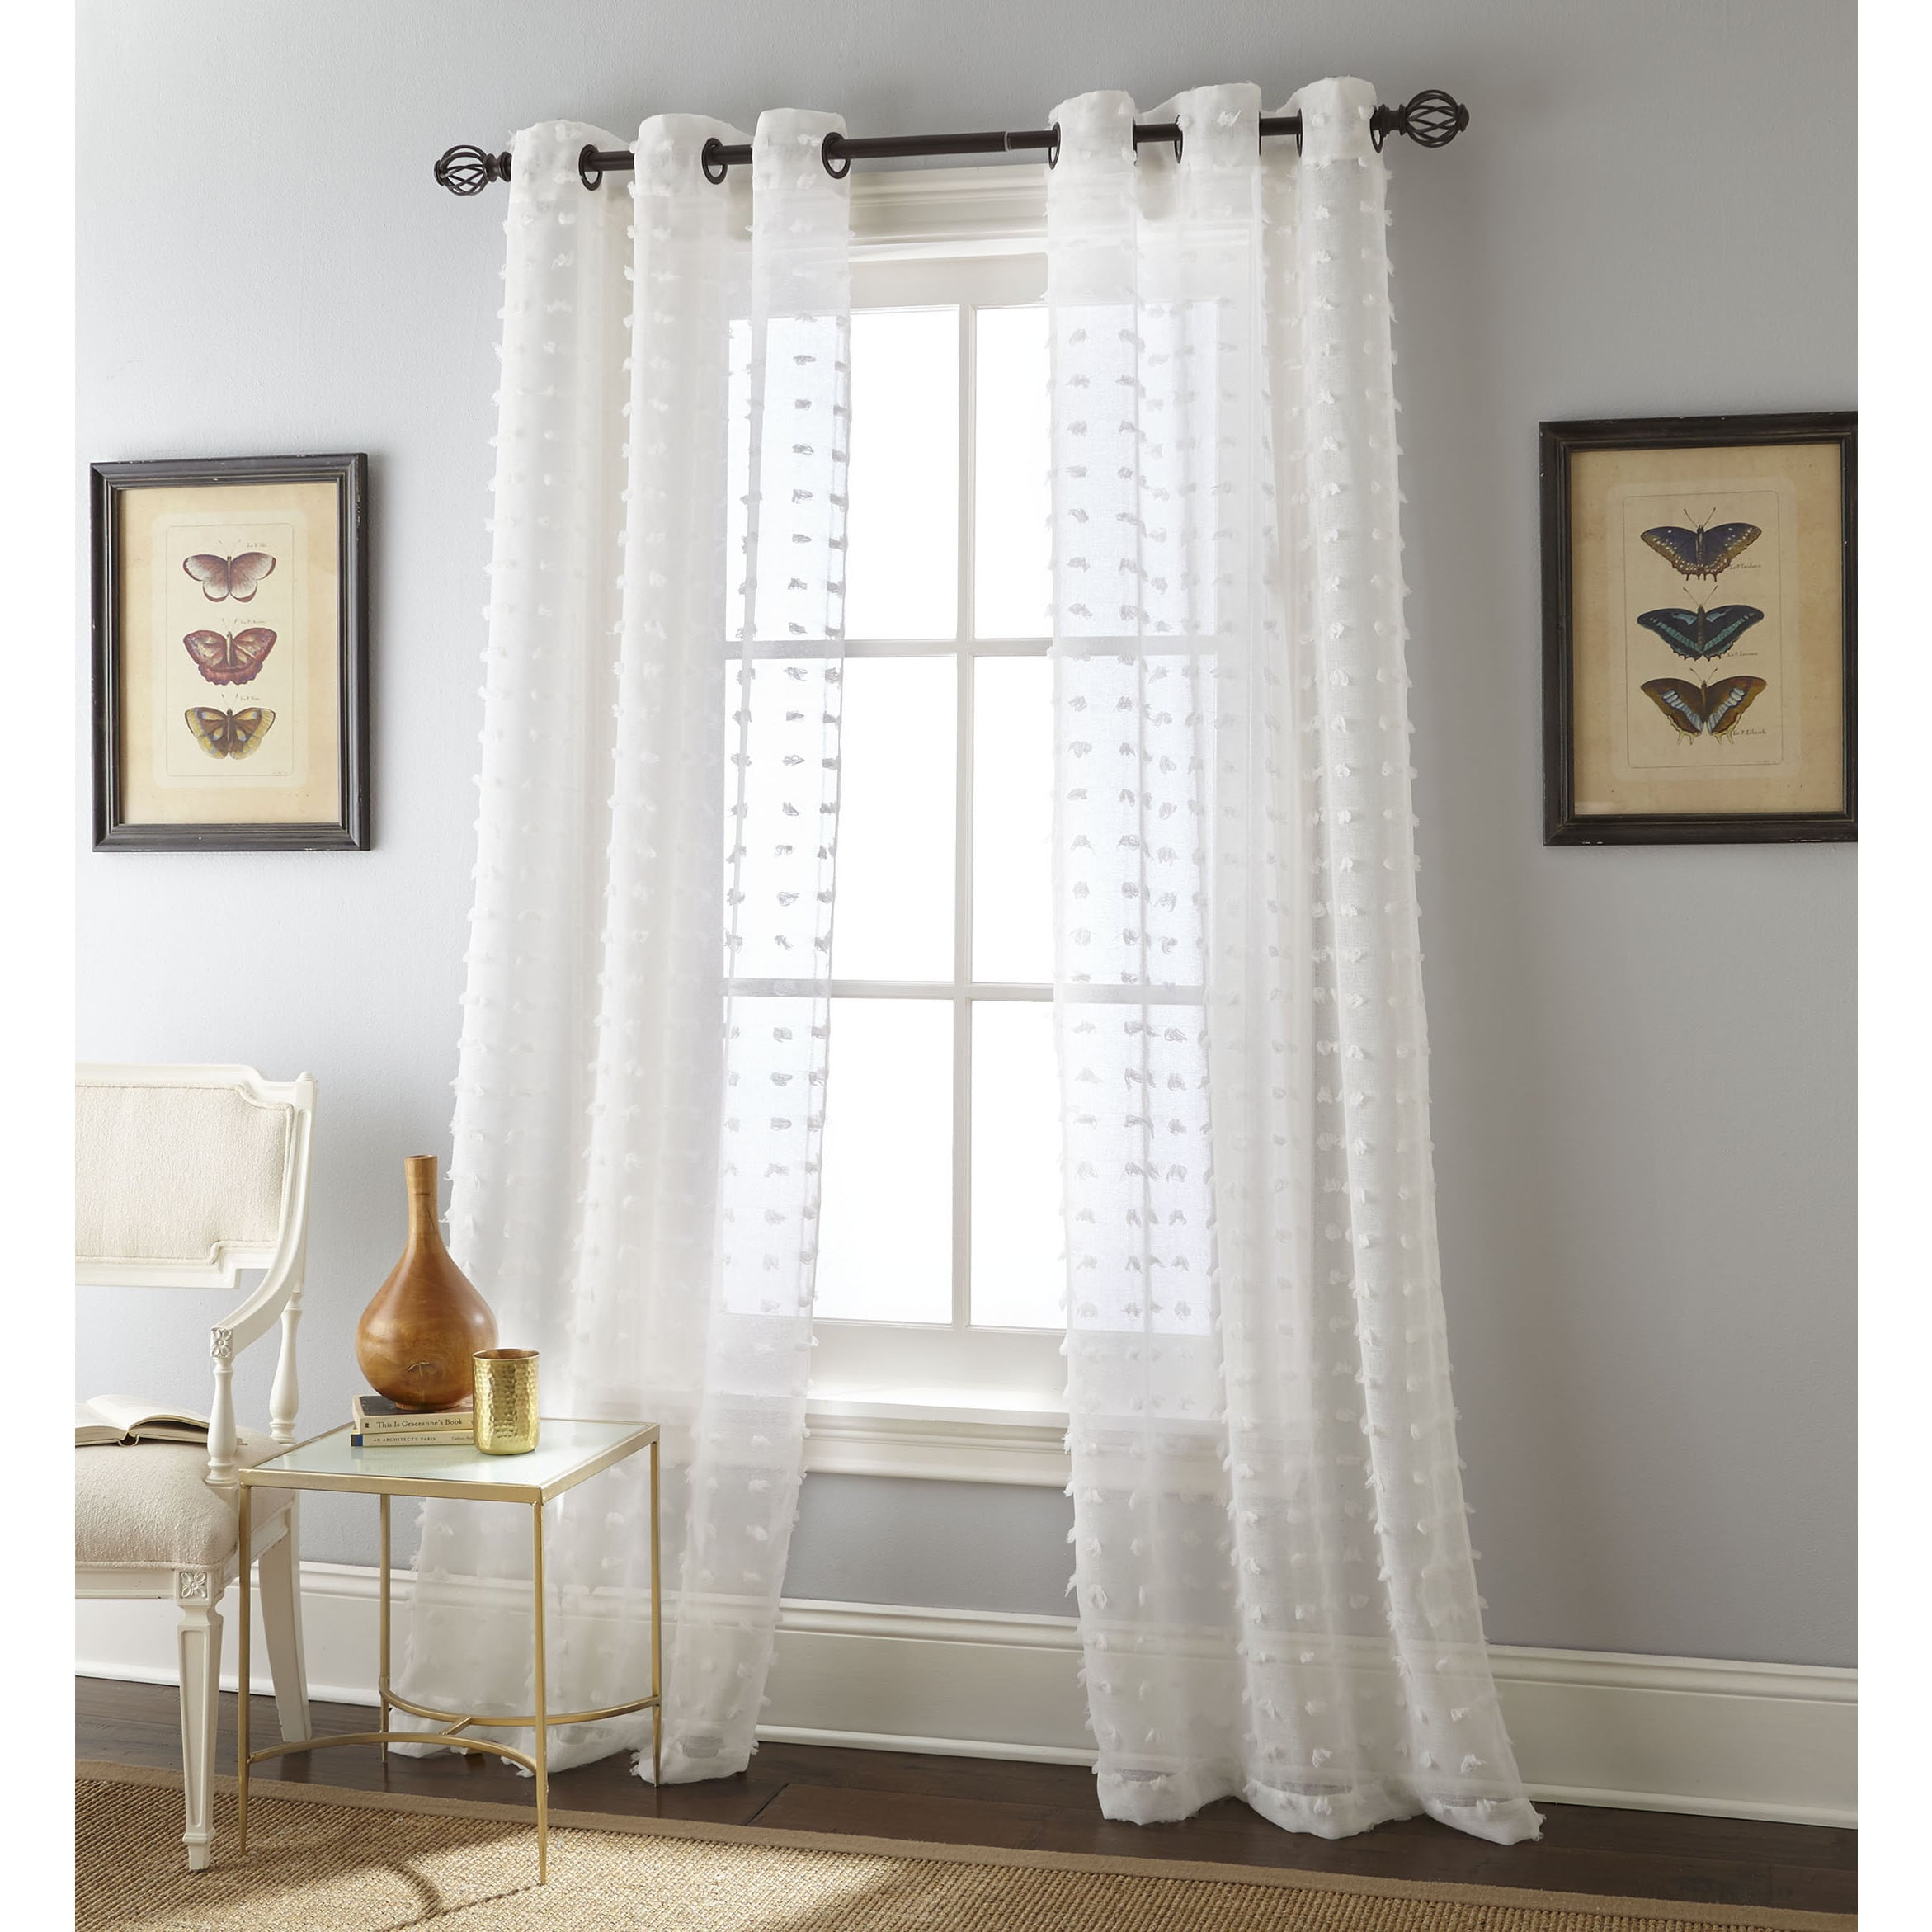 Nanshing Payton Solid Grommet Top Curtain Panel Pair (grey Intended For Solid Grommet Top Curtain Panel Pairs (View 7 of 30)